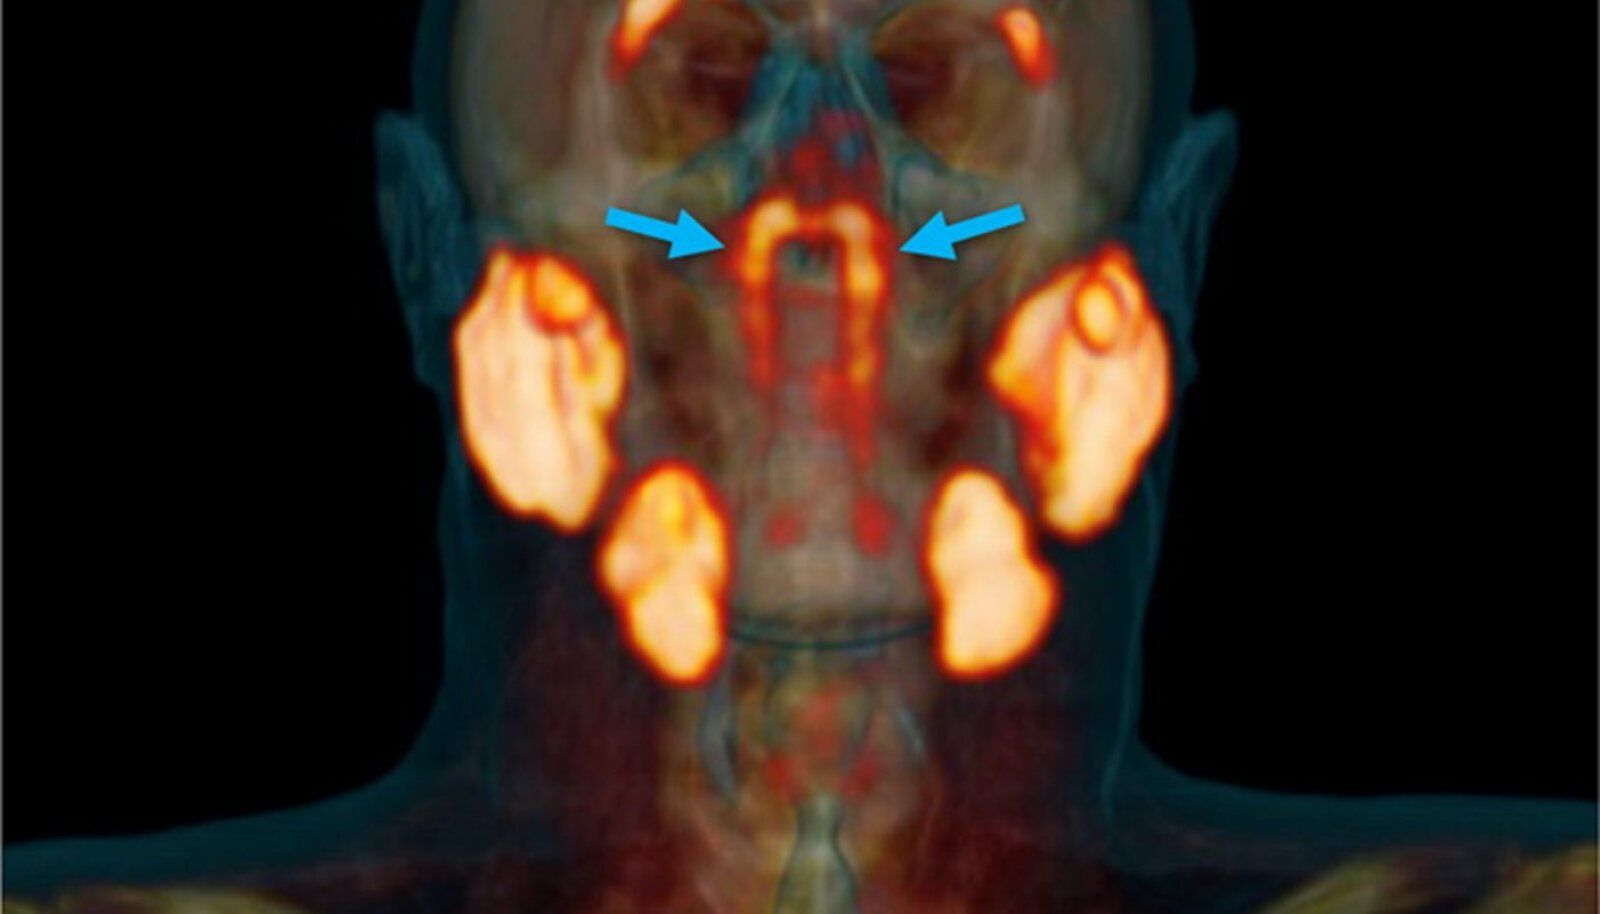 Foto: Valstar et al., Radiotherapy and Oncology, 2020